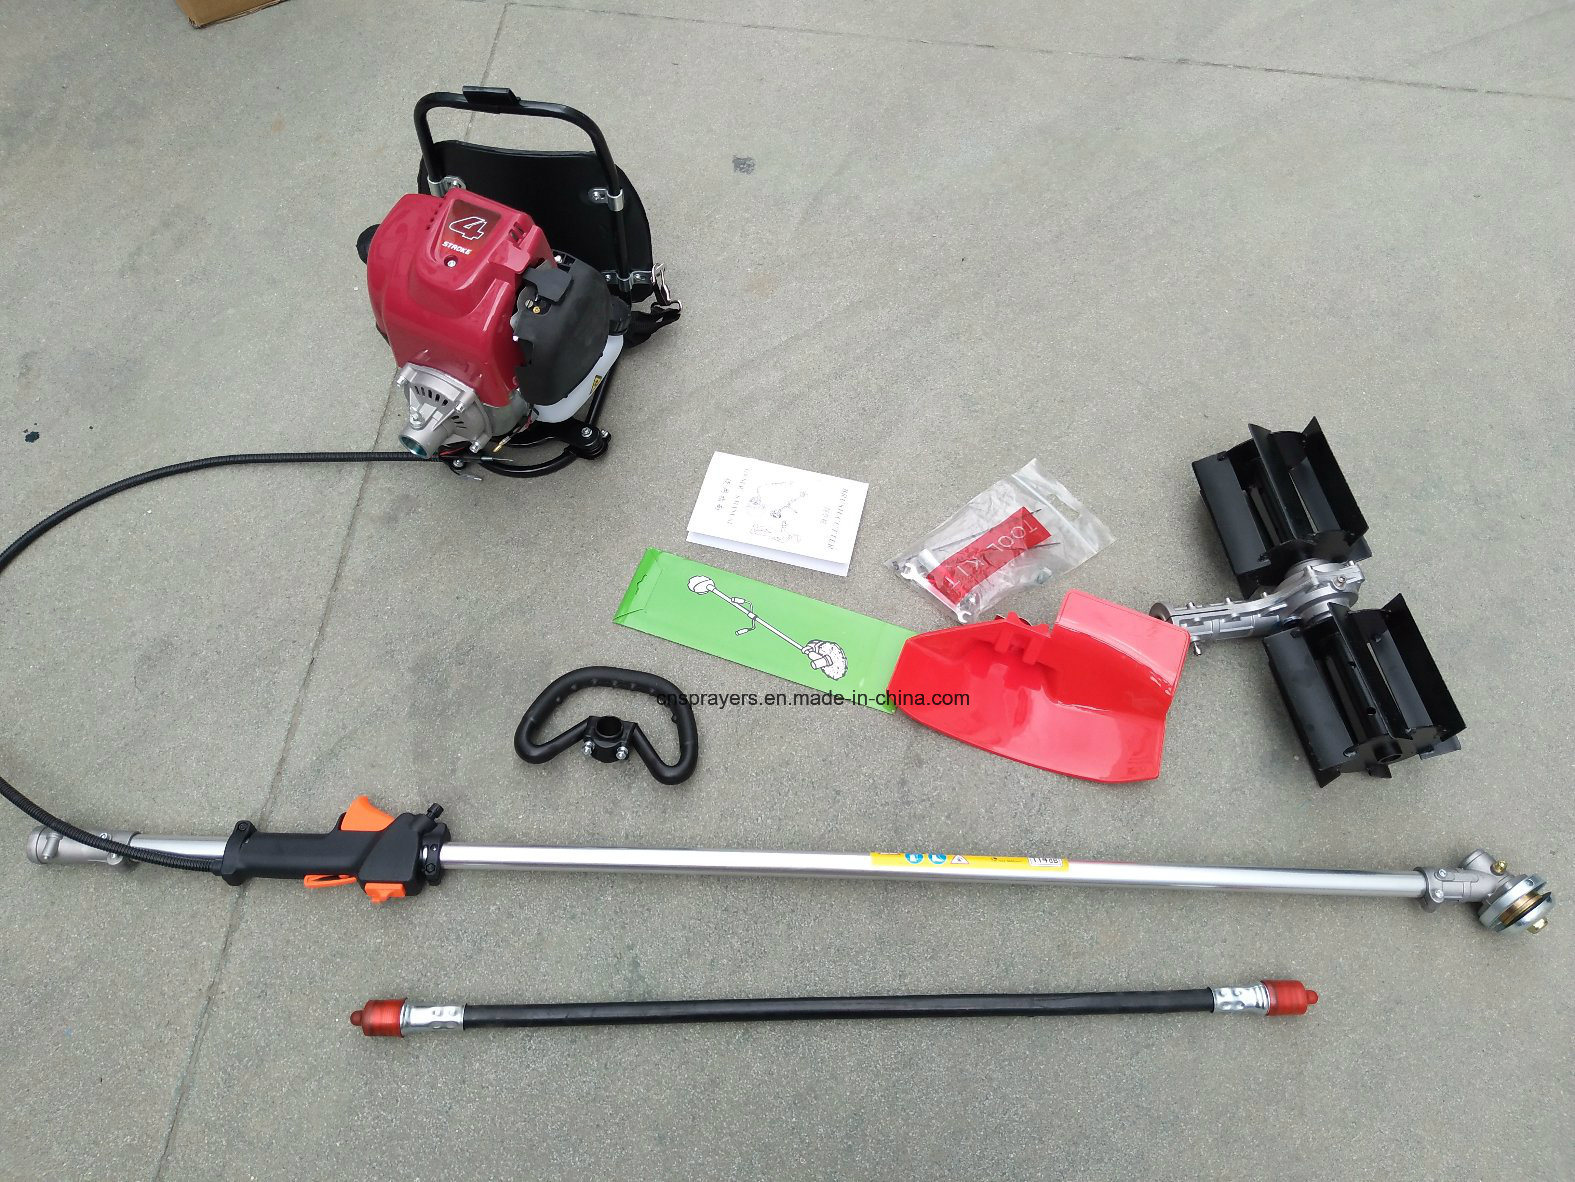 Gasoline Engine 139F 4 Strokes Knapsack Motorized Weeder / Brush Cutter (HT-BG330)